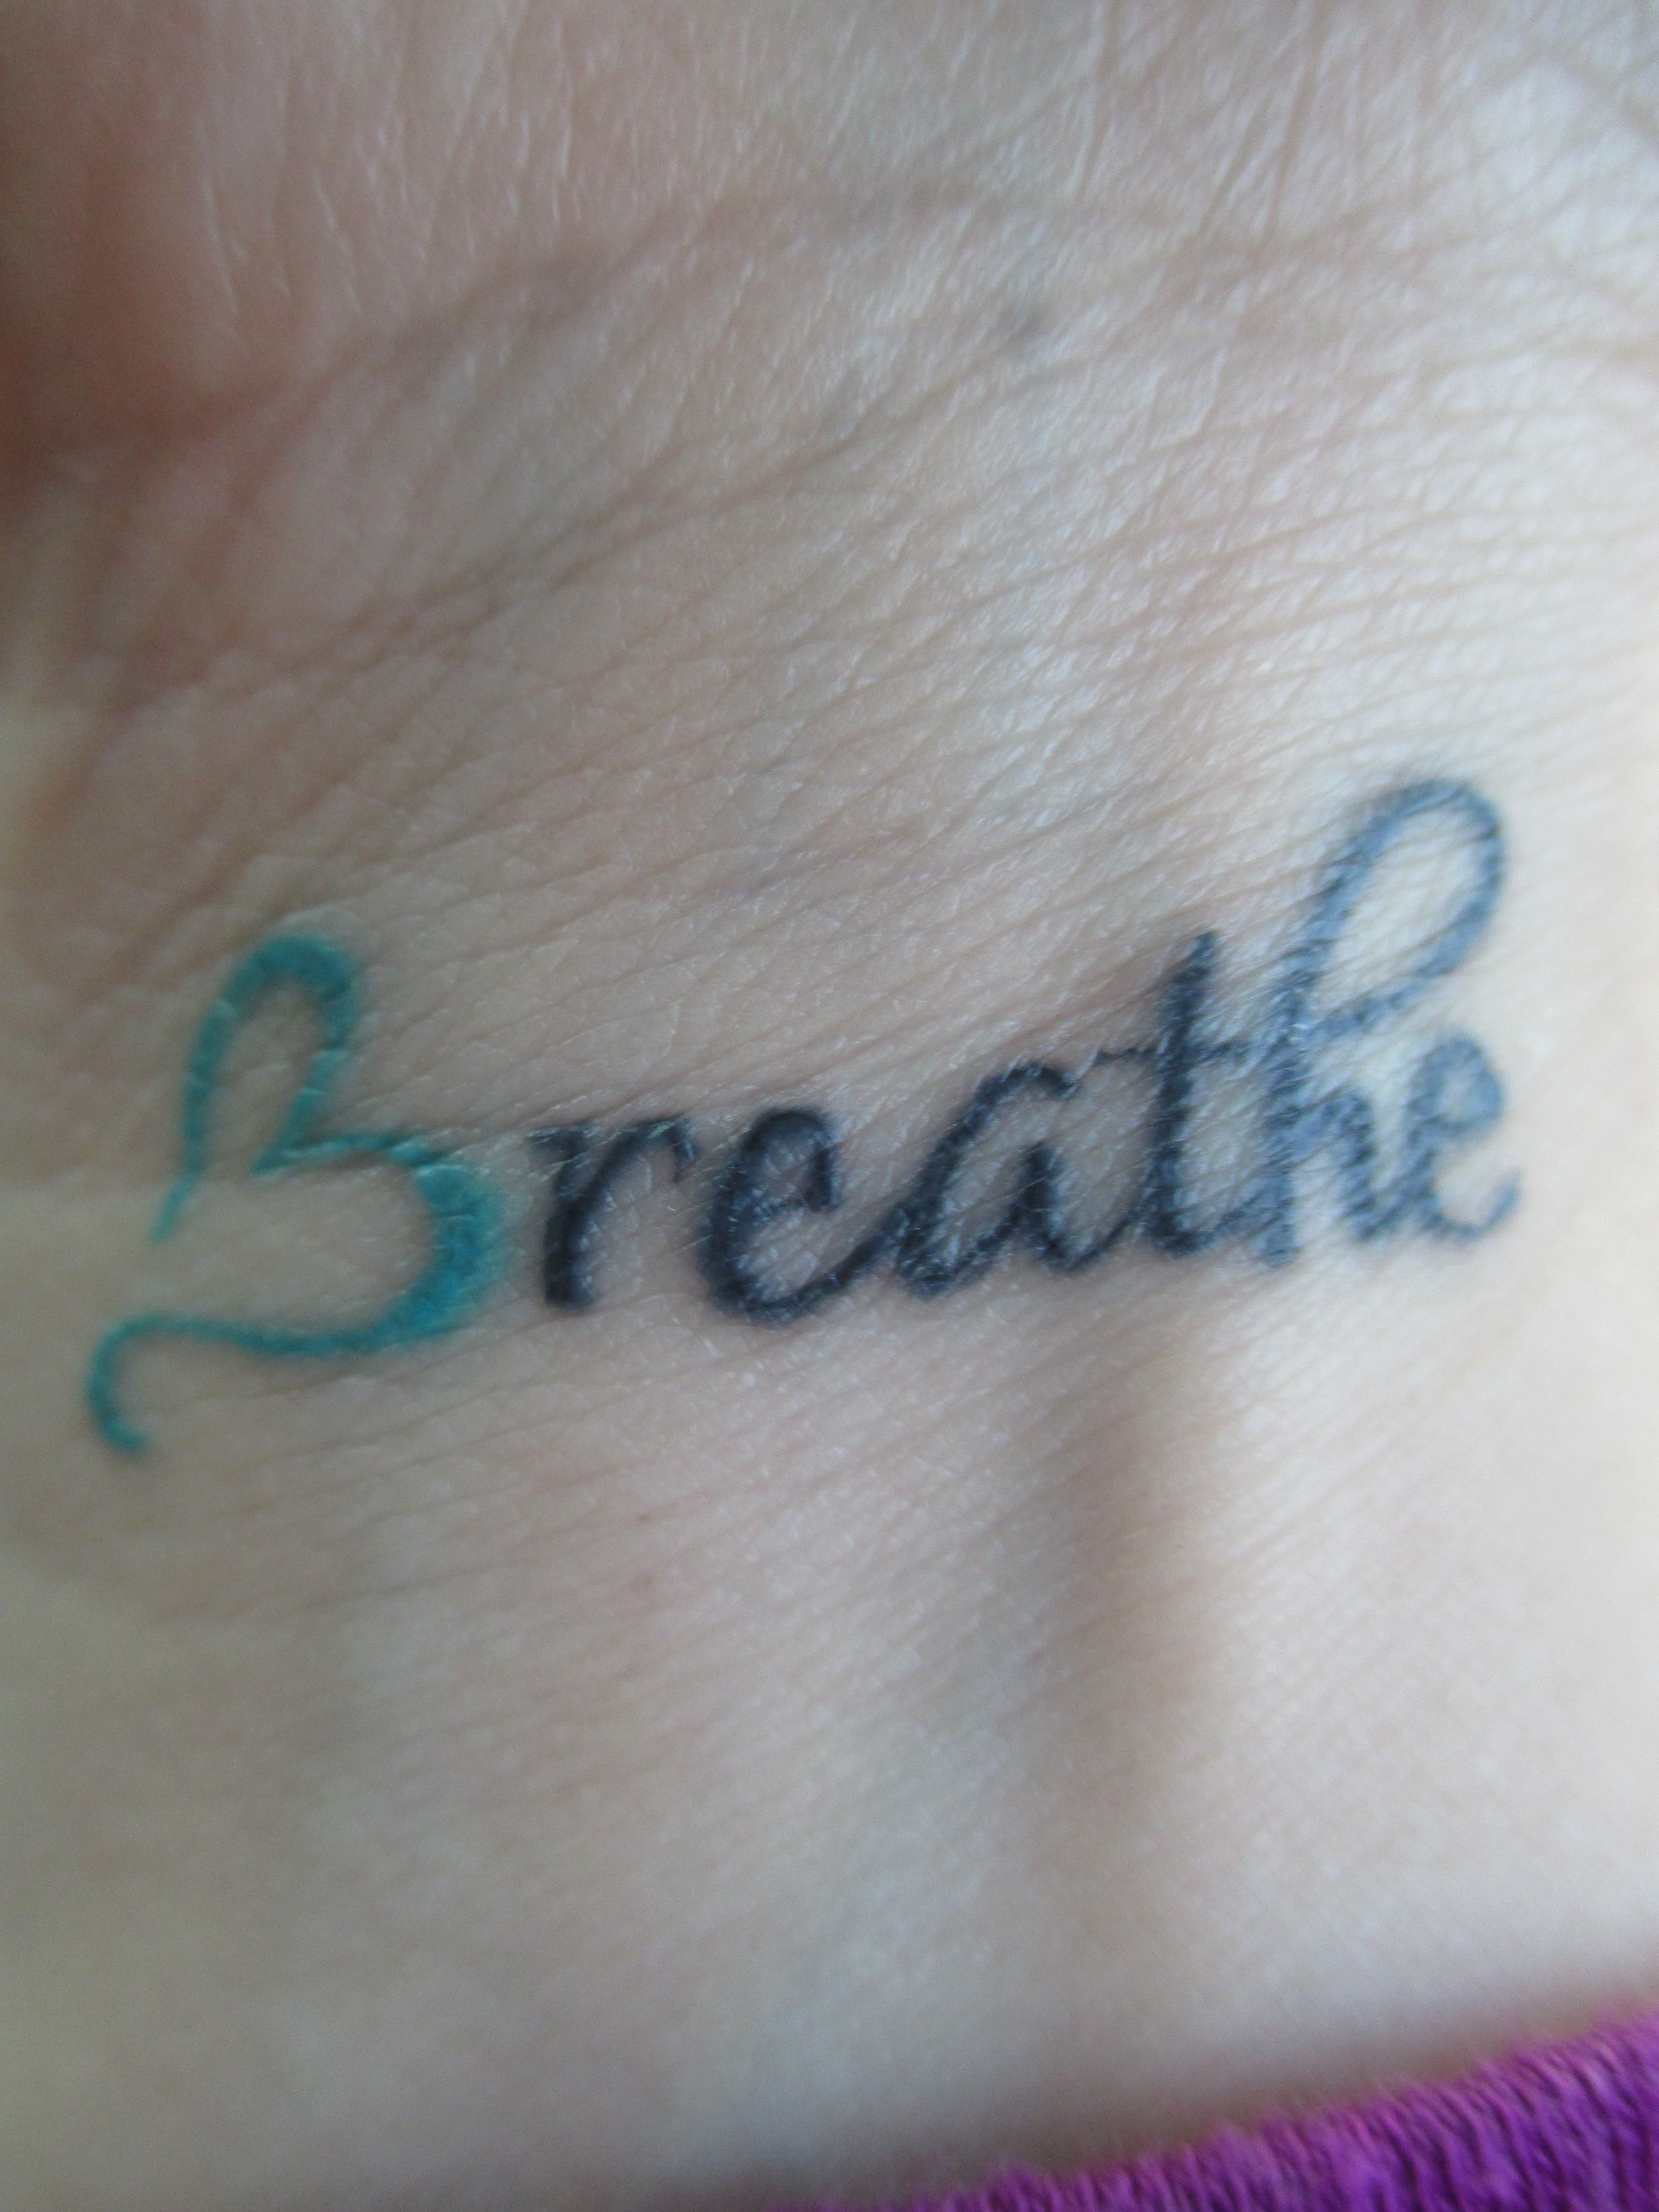 Tattoo i got for my husband ory who battles cystic fibrosis he is